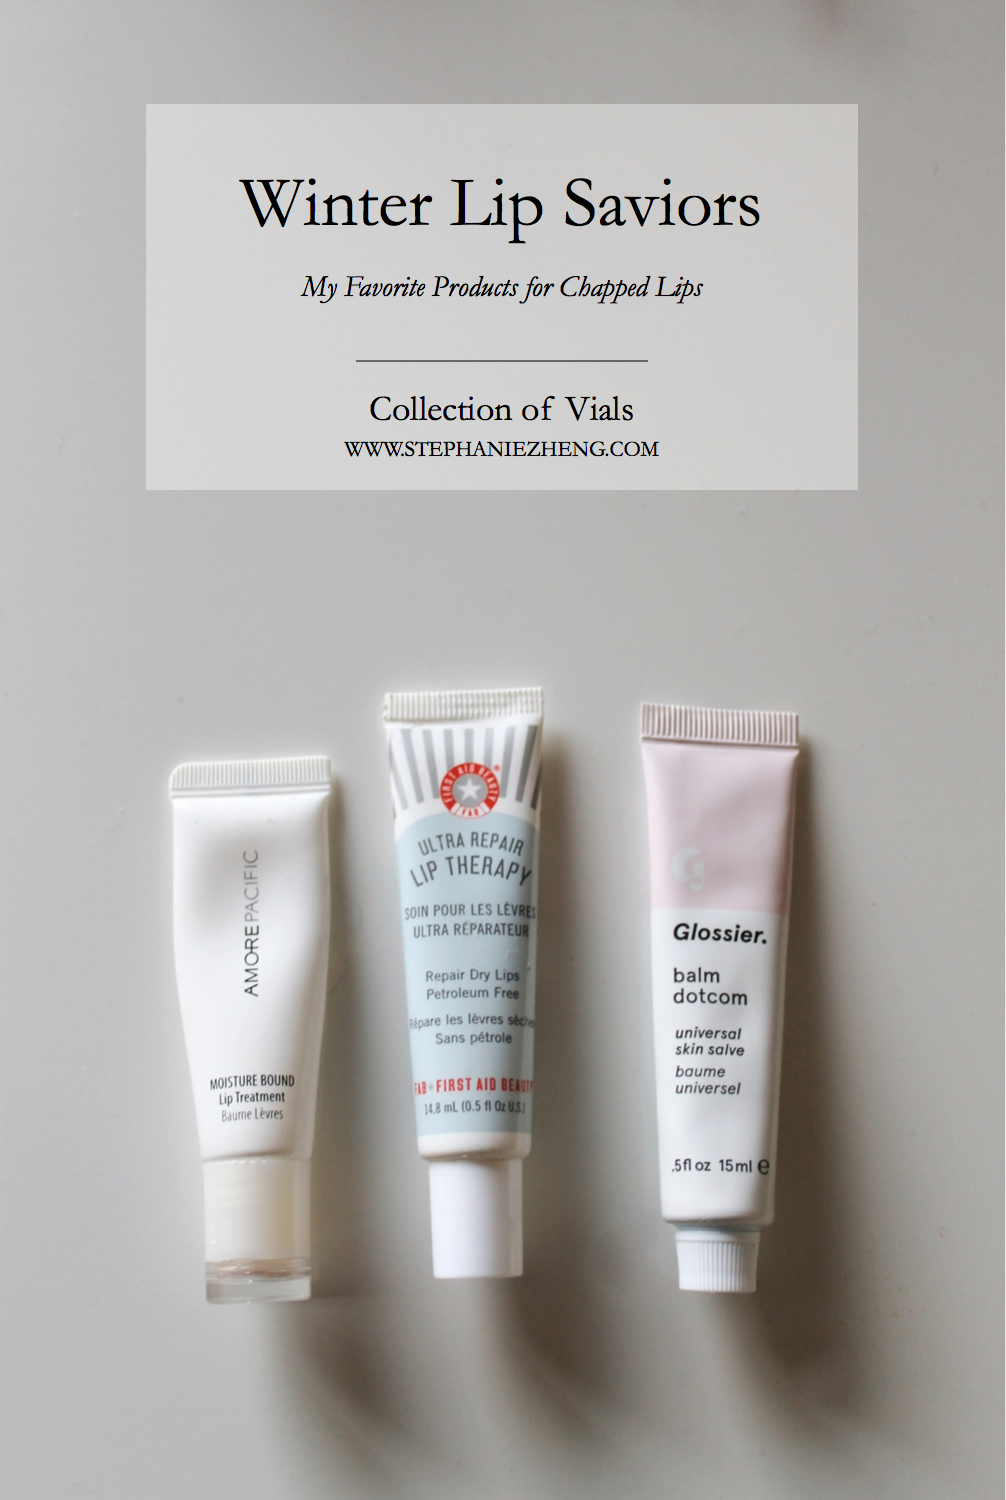 Winter Lip Saviors, AmorePacific, Amore Pacific Lip Treatment, Glossier, Glossier Balm DotCom, Balm Dot Com, Chapped Lip Solutions, First Aid Beauty